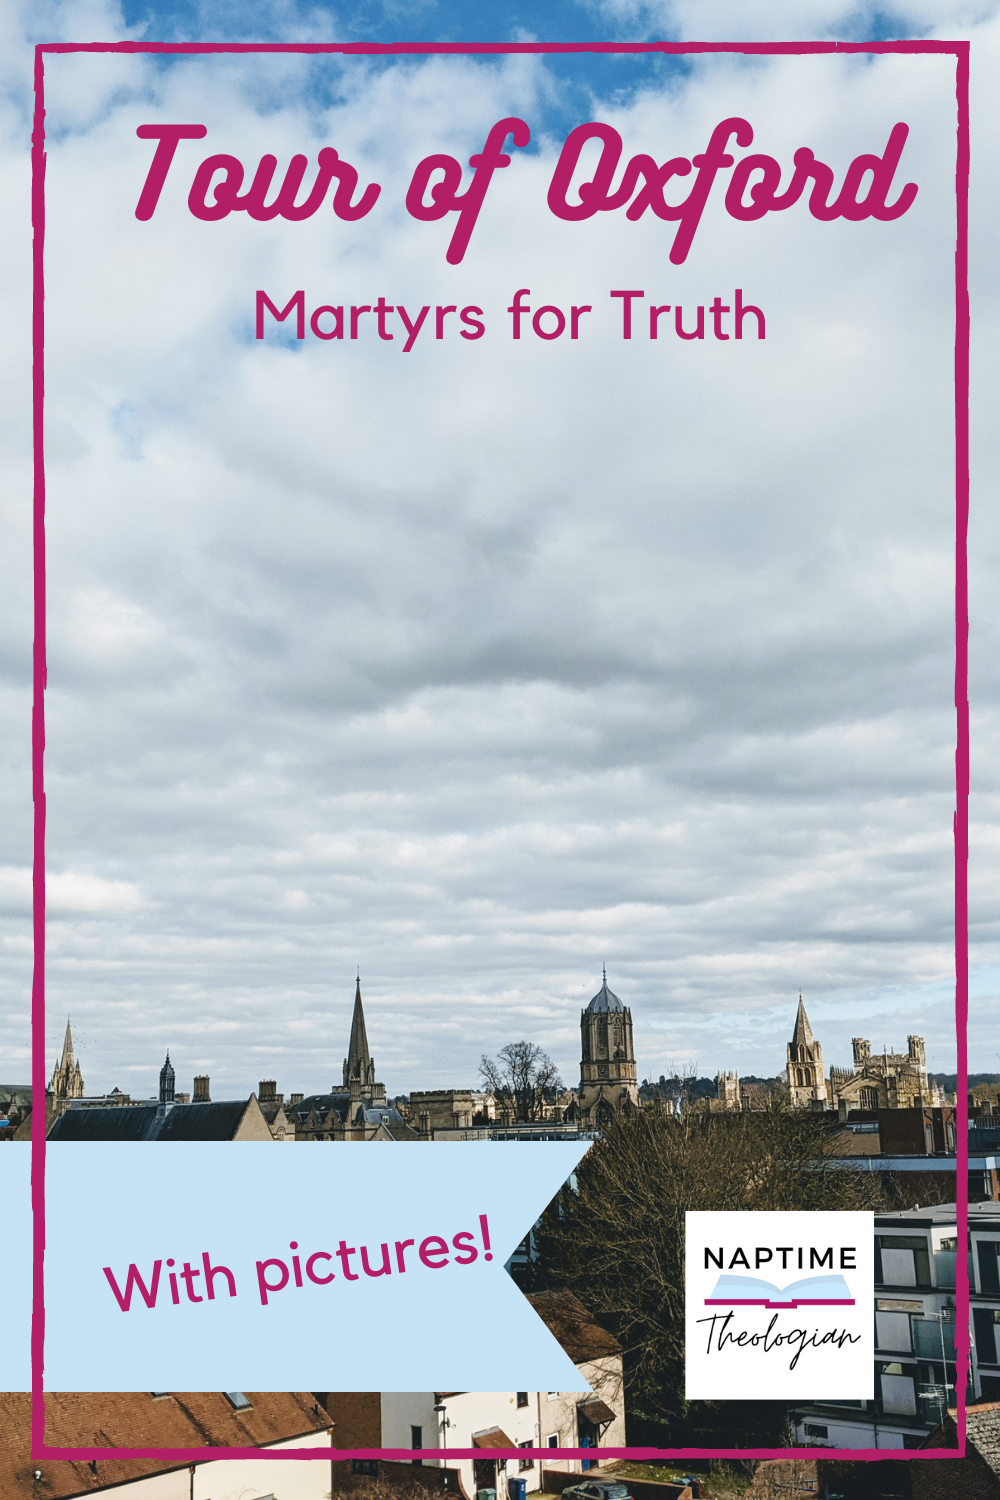 Tour of Oxford |Martyrs for Truth